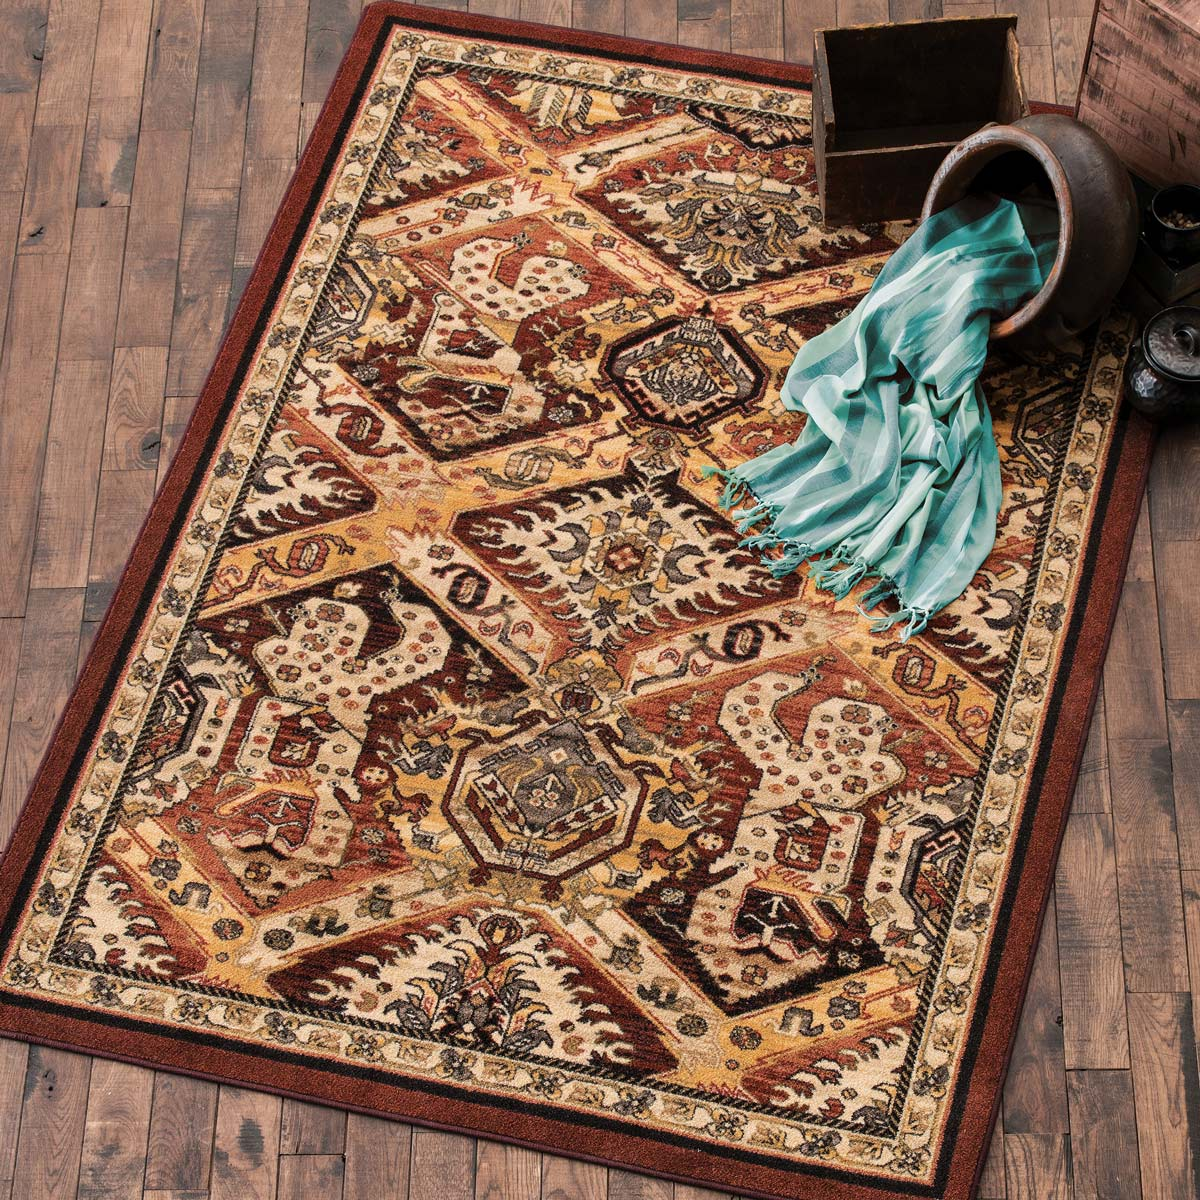 Spirit Dancer Rug - 8 x 11